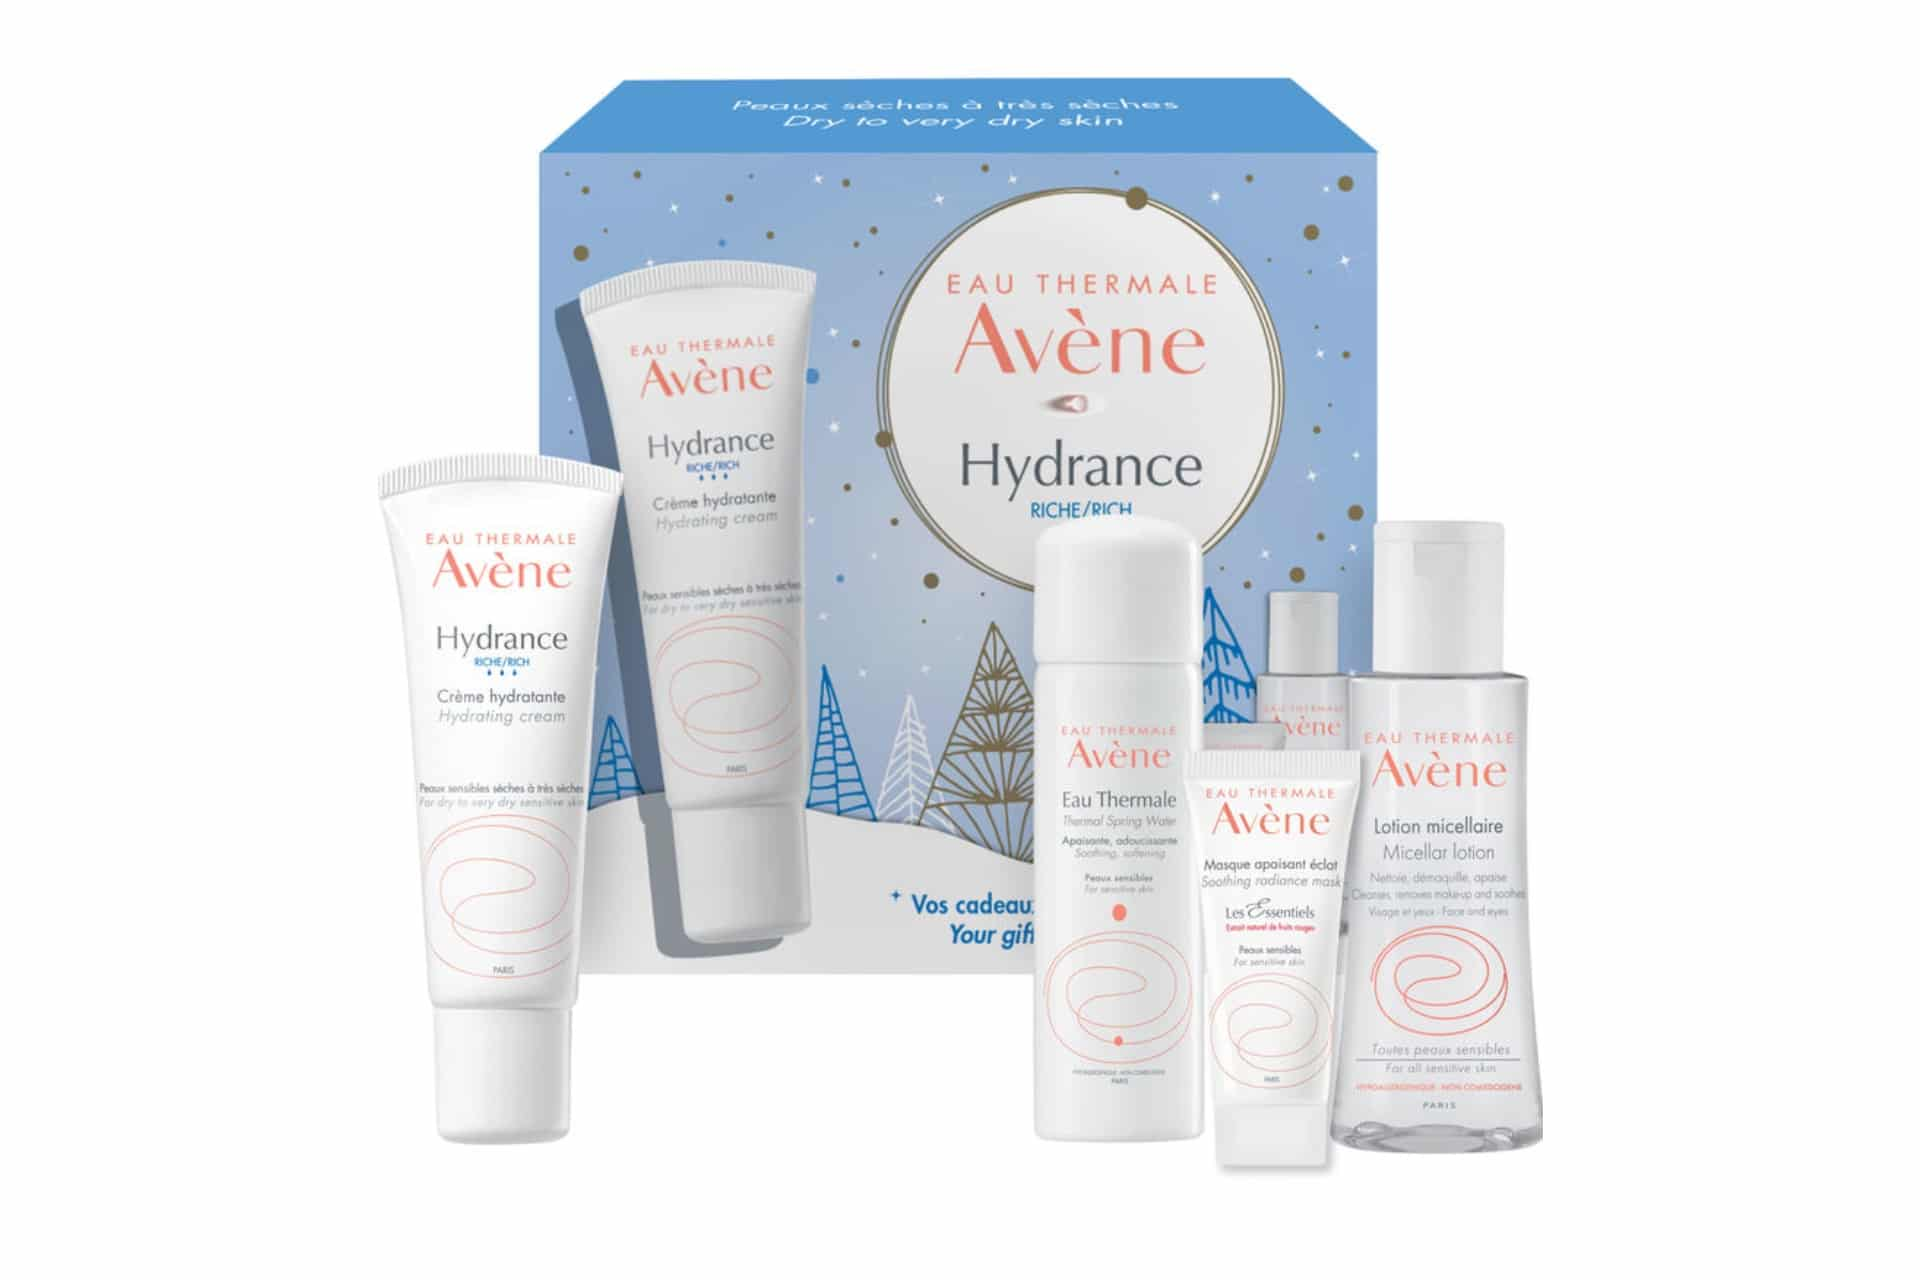 hydrating skincare set in a blue holiday-themed package